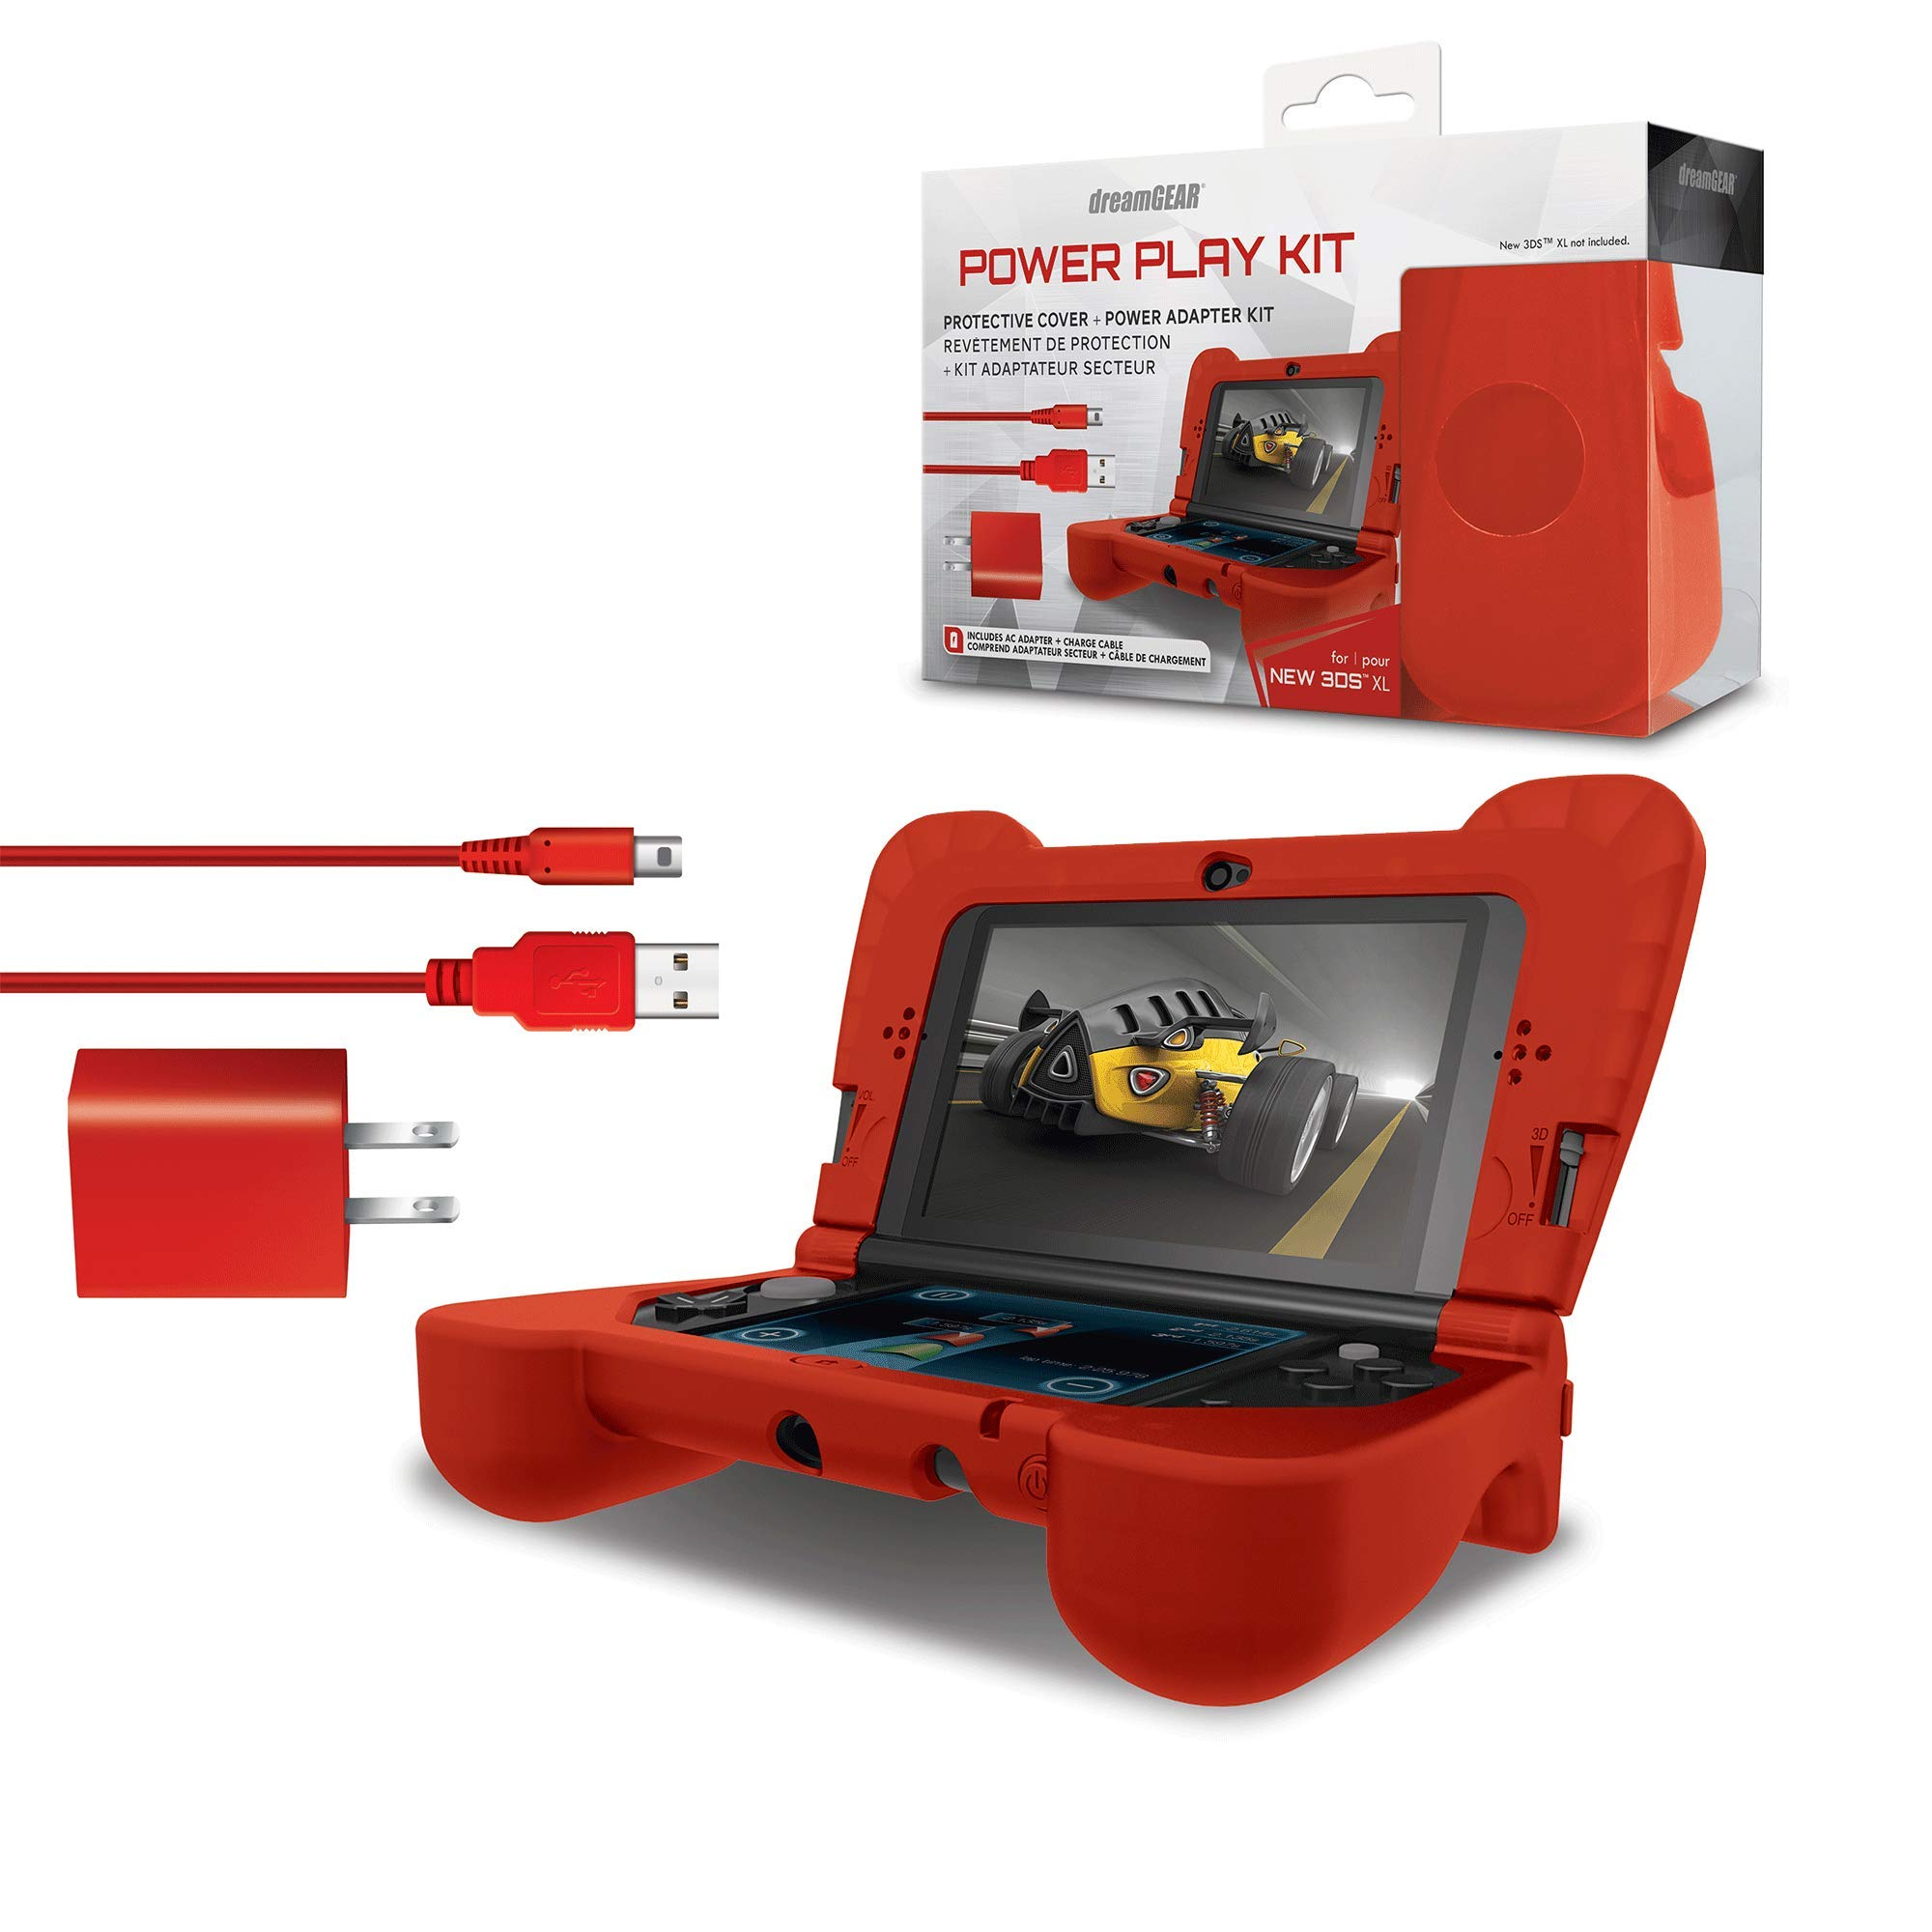 dreamGEAR DG3DSXL-2275 Power Play Kit Accessories: Compatible with Nintendo NEW 3DS XL, 3-In-1 Bundle, Soft Comfort Grip Case, Charging Cable, AC Adapter, Red